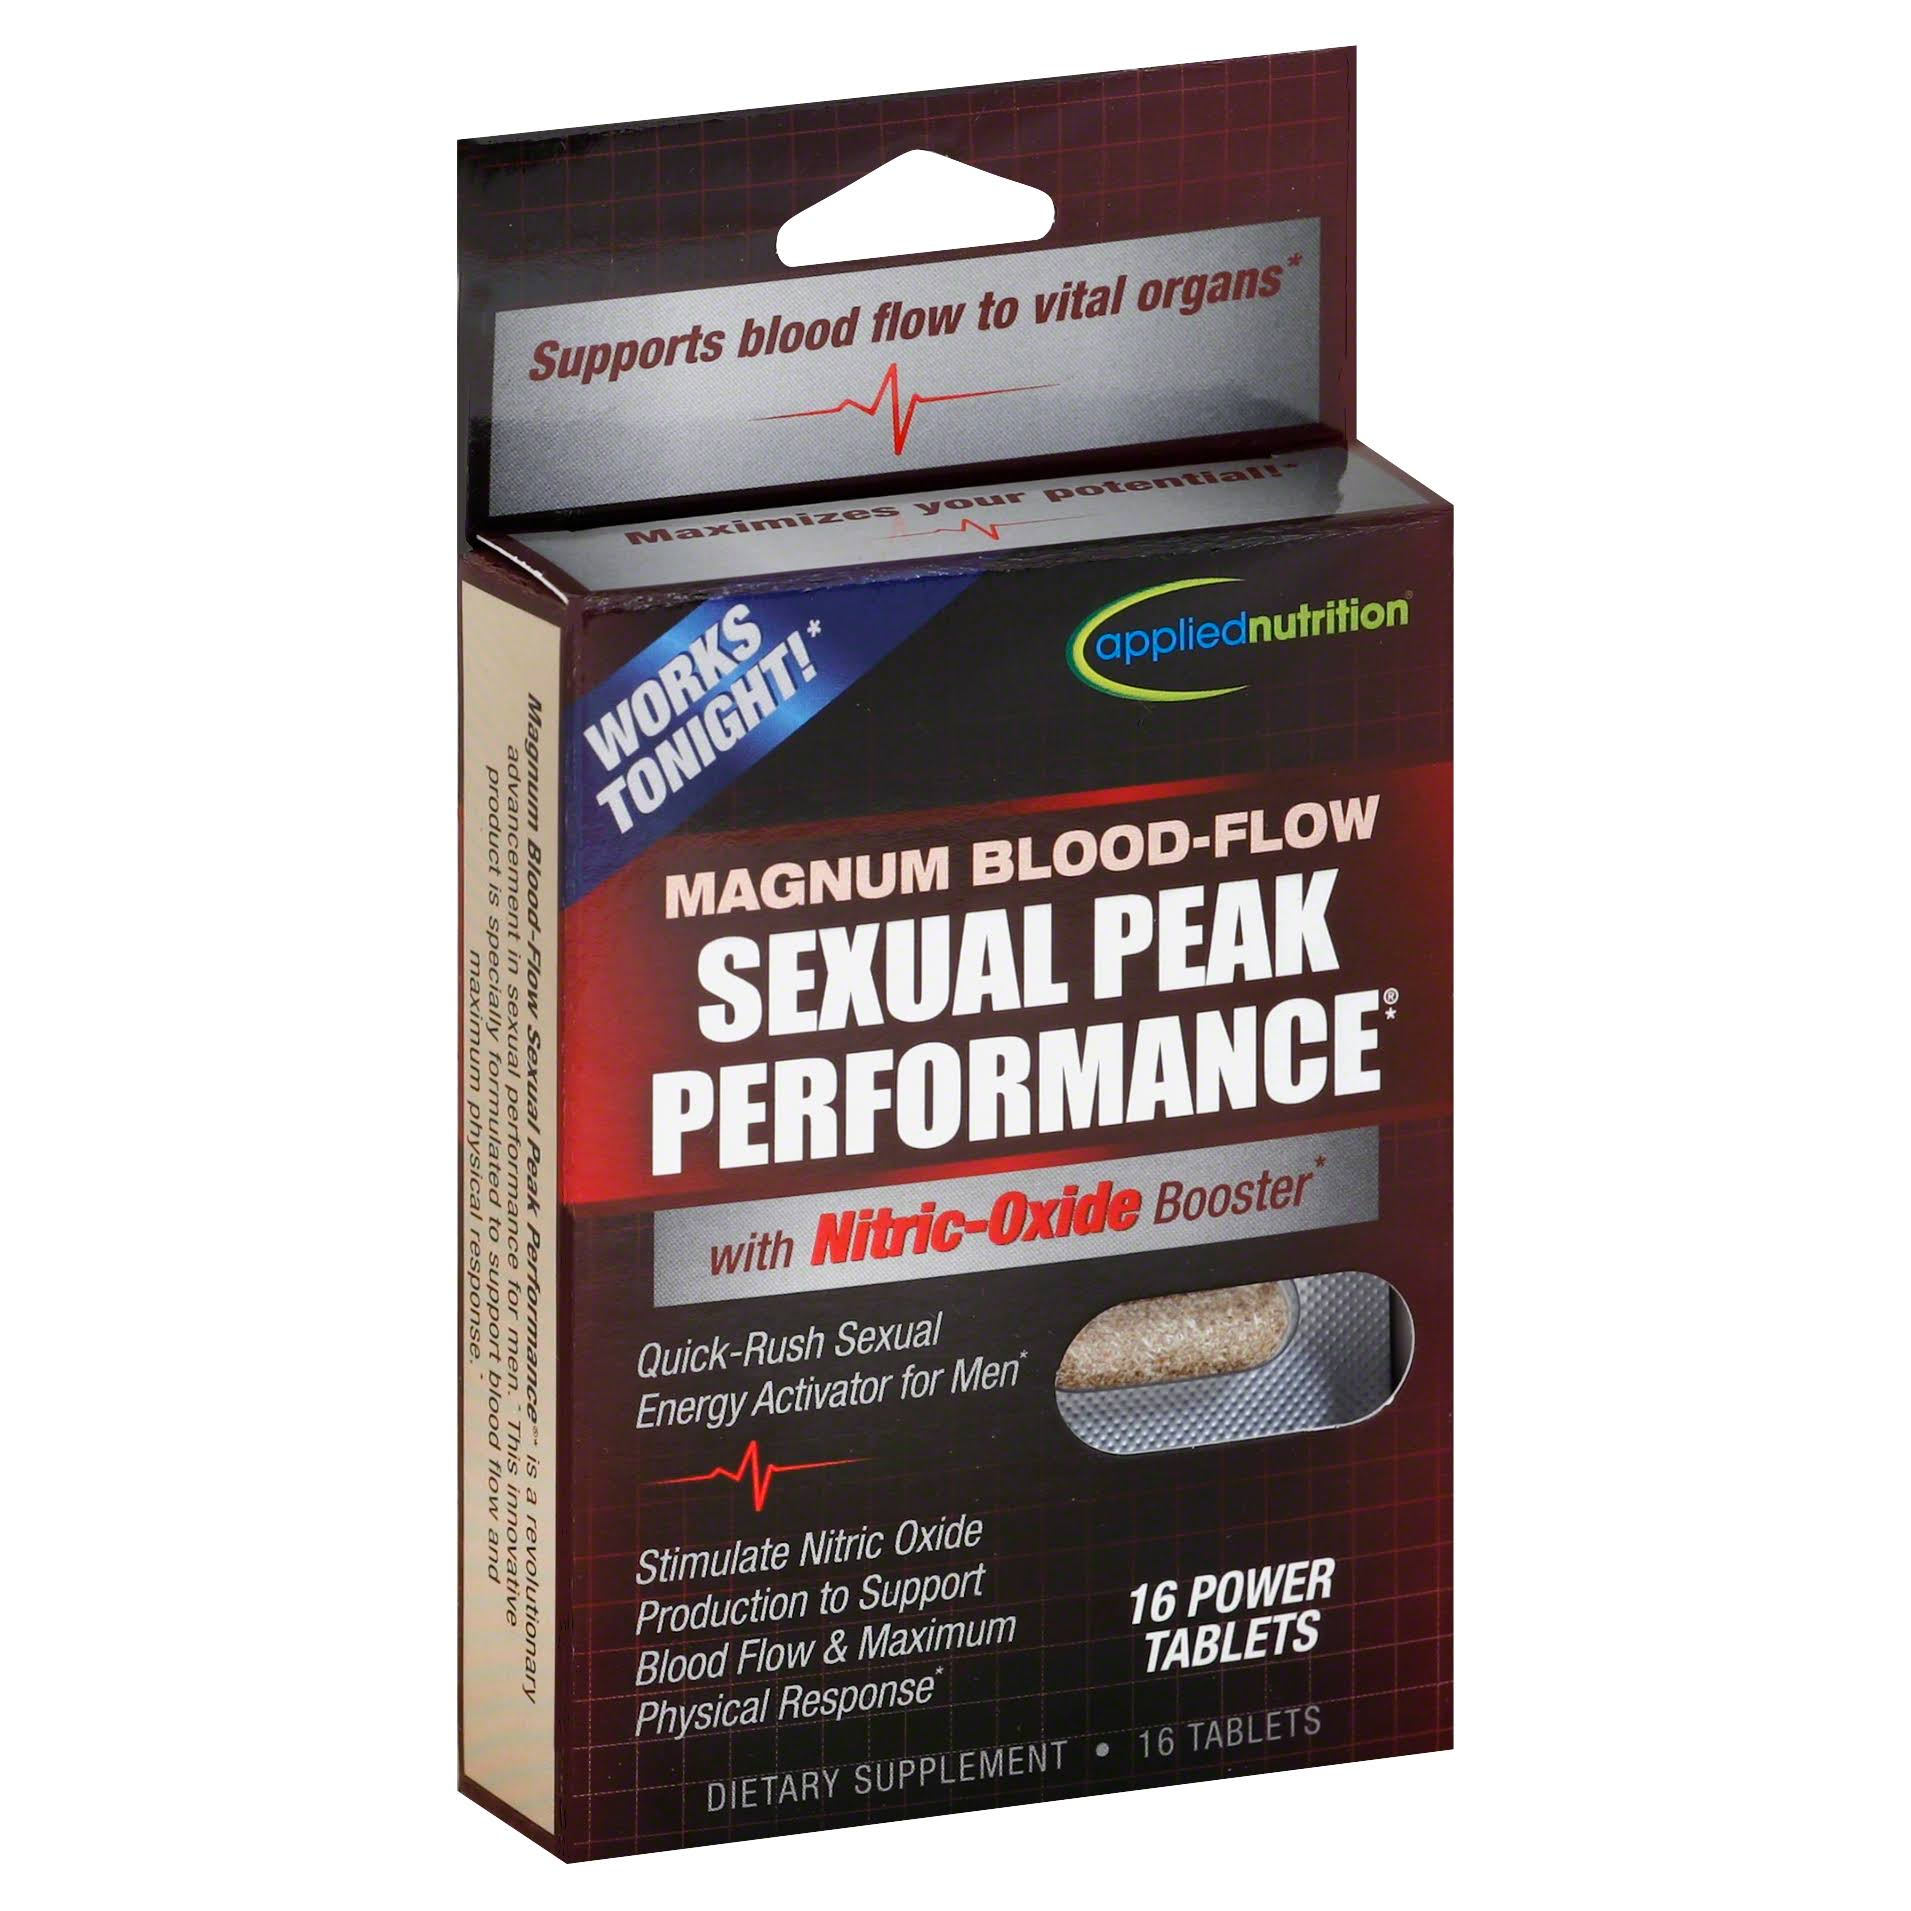 Applied Nutrition Magnum Blood-Flow Sexual Peak Performance Supplement - 16 Power Tablets